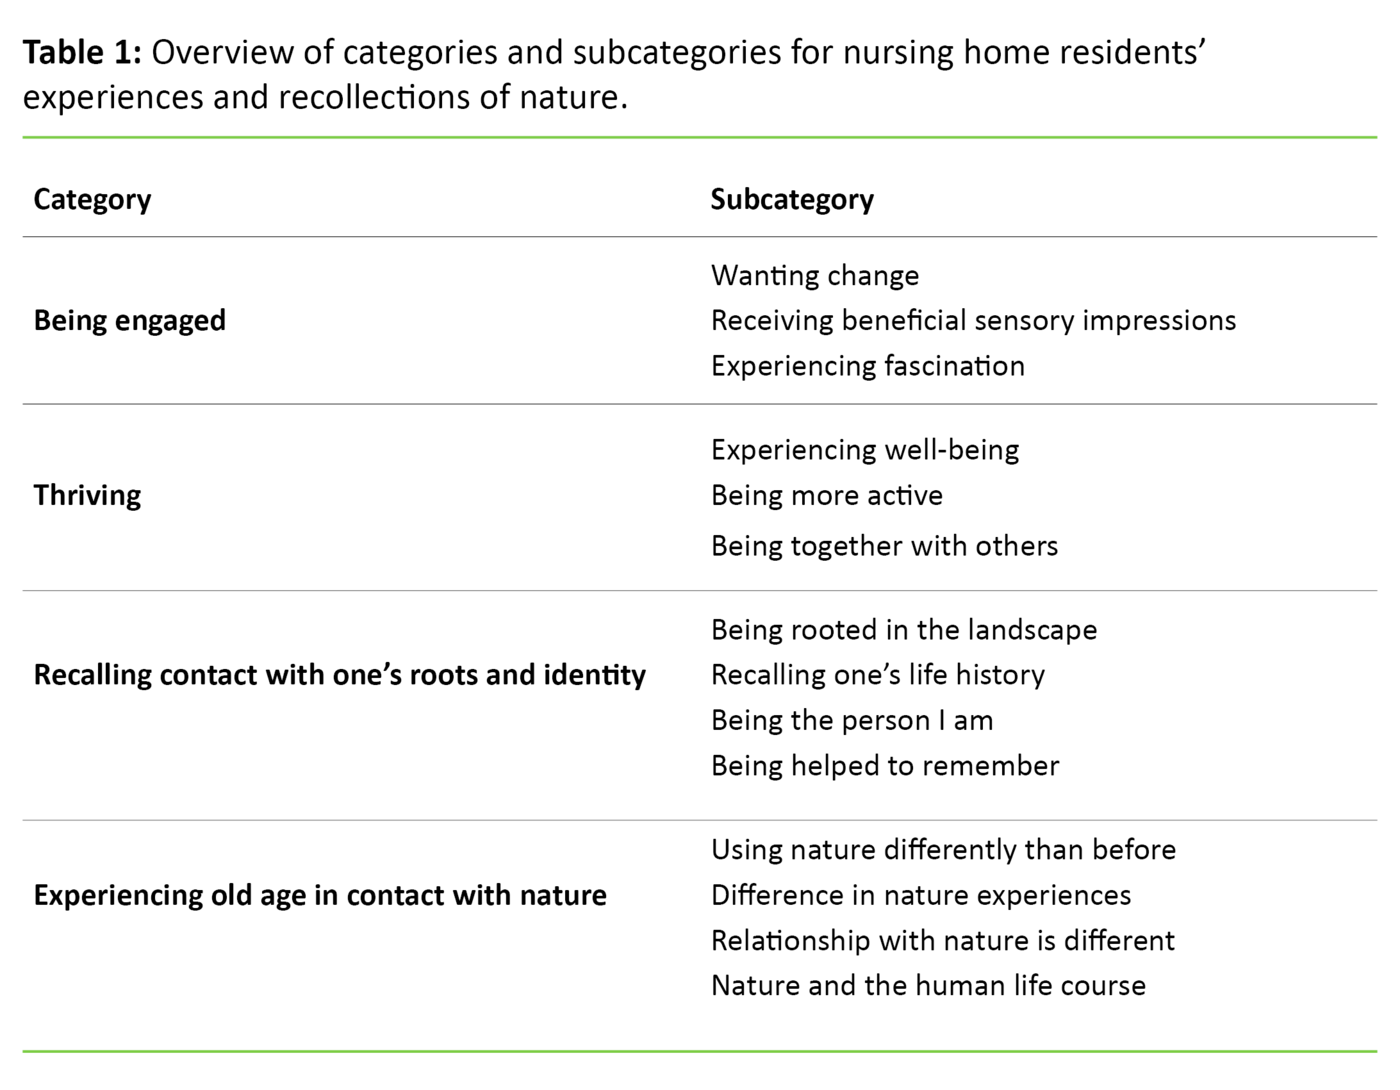 Table 1: Overview of categories and subcategories for nursing home residents' experiences and recollections of nature